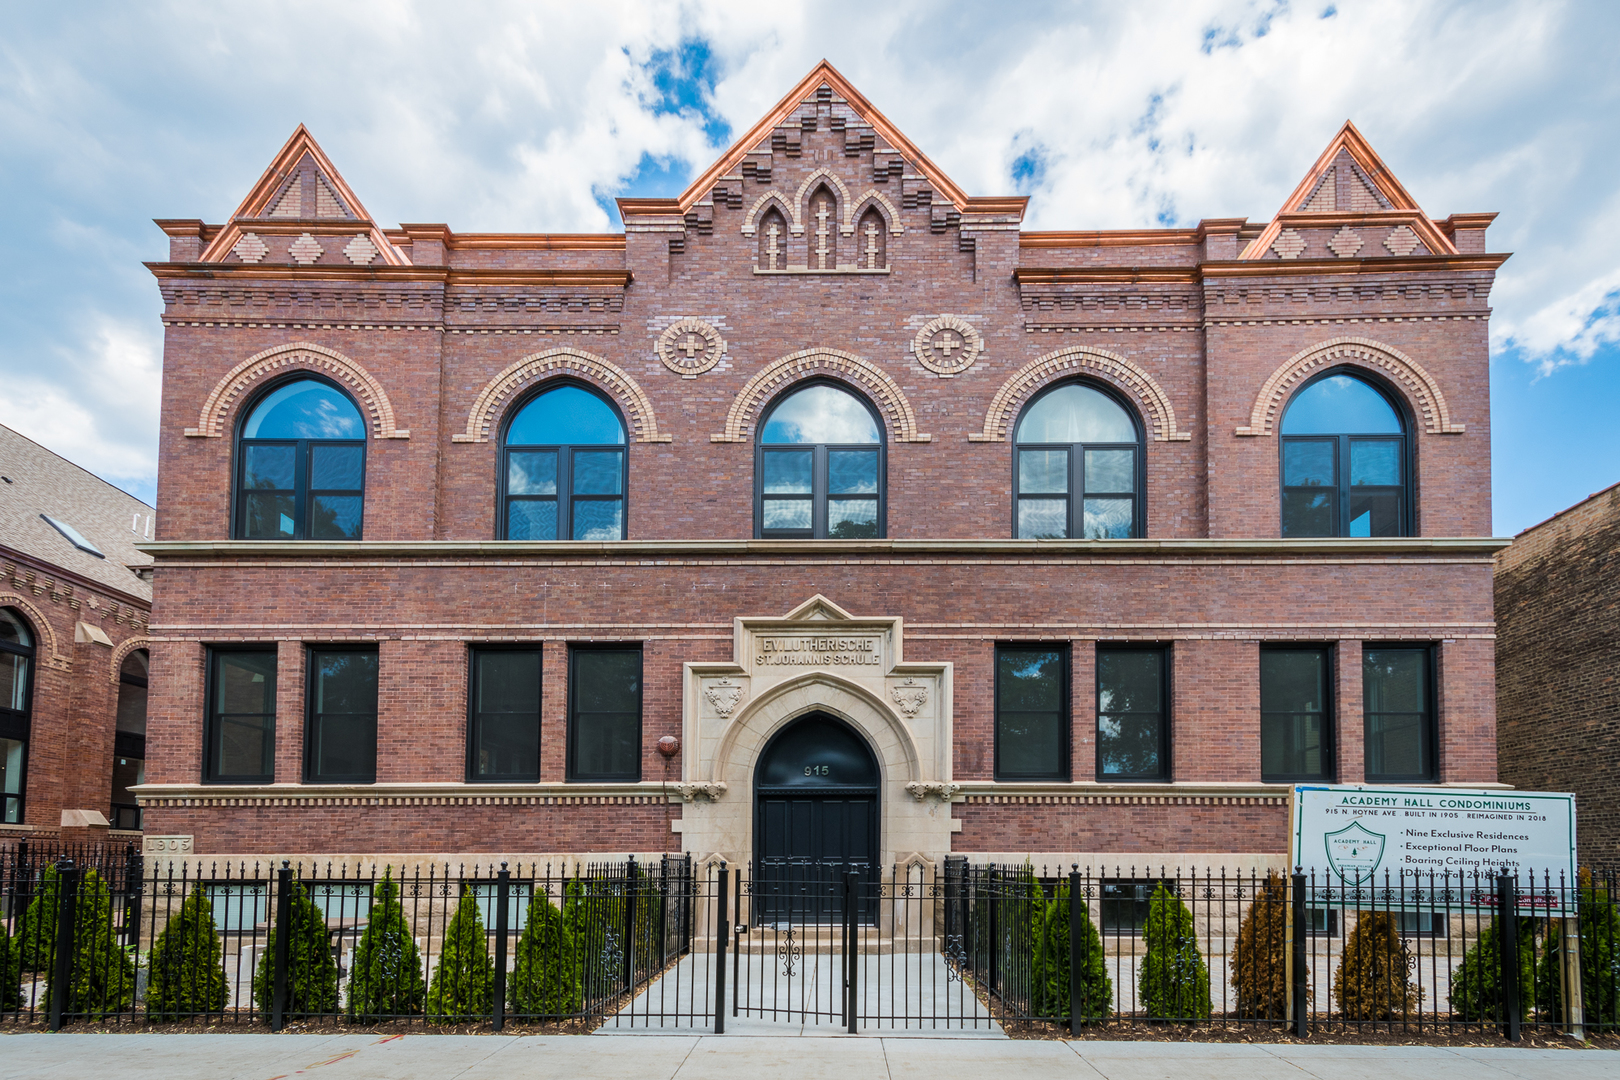 Academy Hall - a Chicago landmark building reimagined into nine unique condos from the original Luth